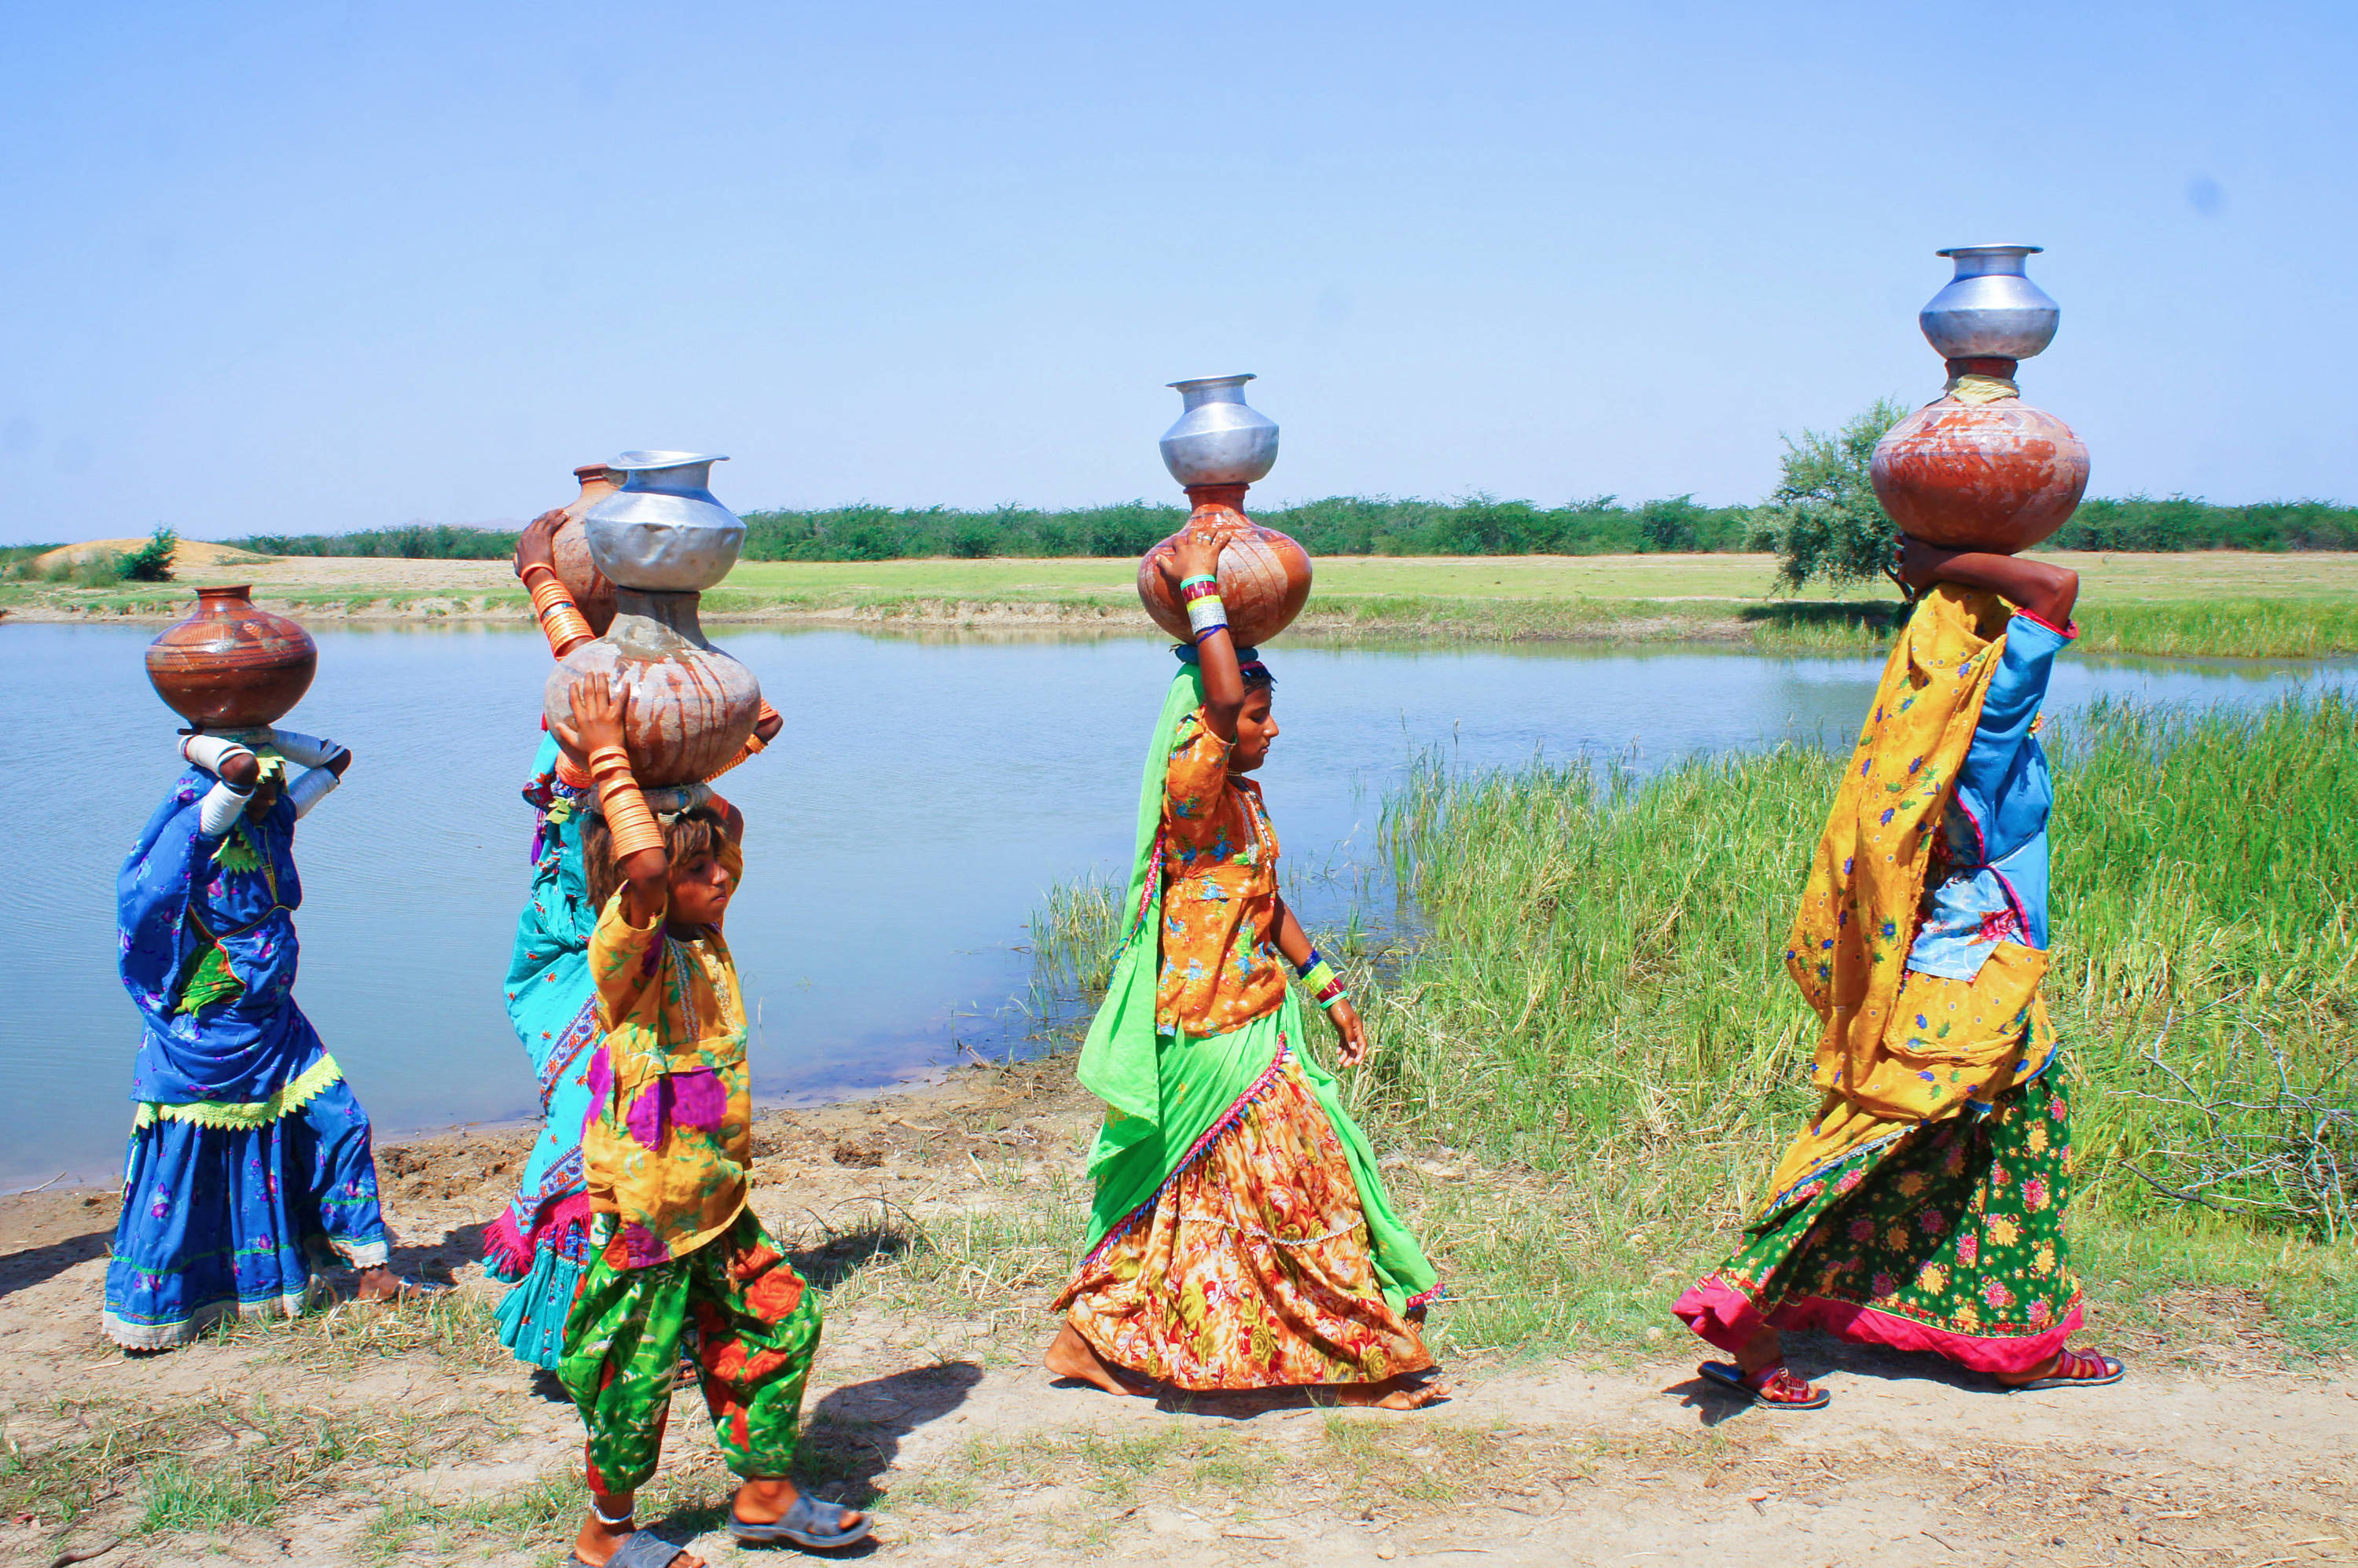 cover picture Pakistan-Thar - women carry water jugs